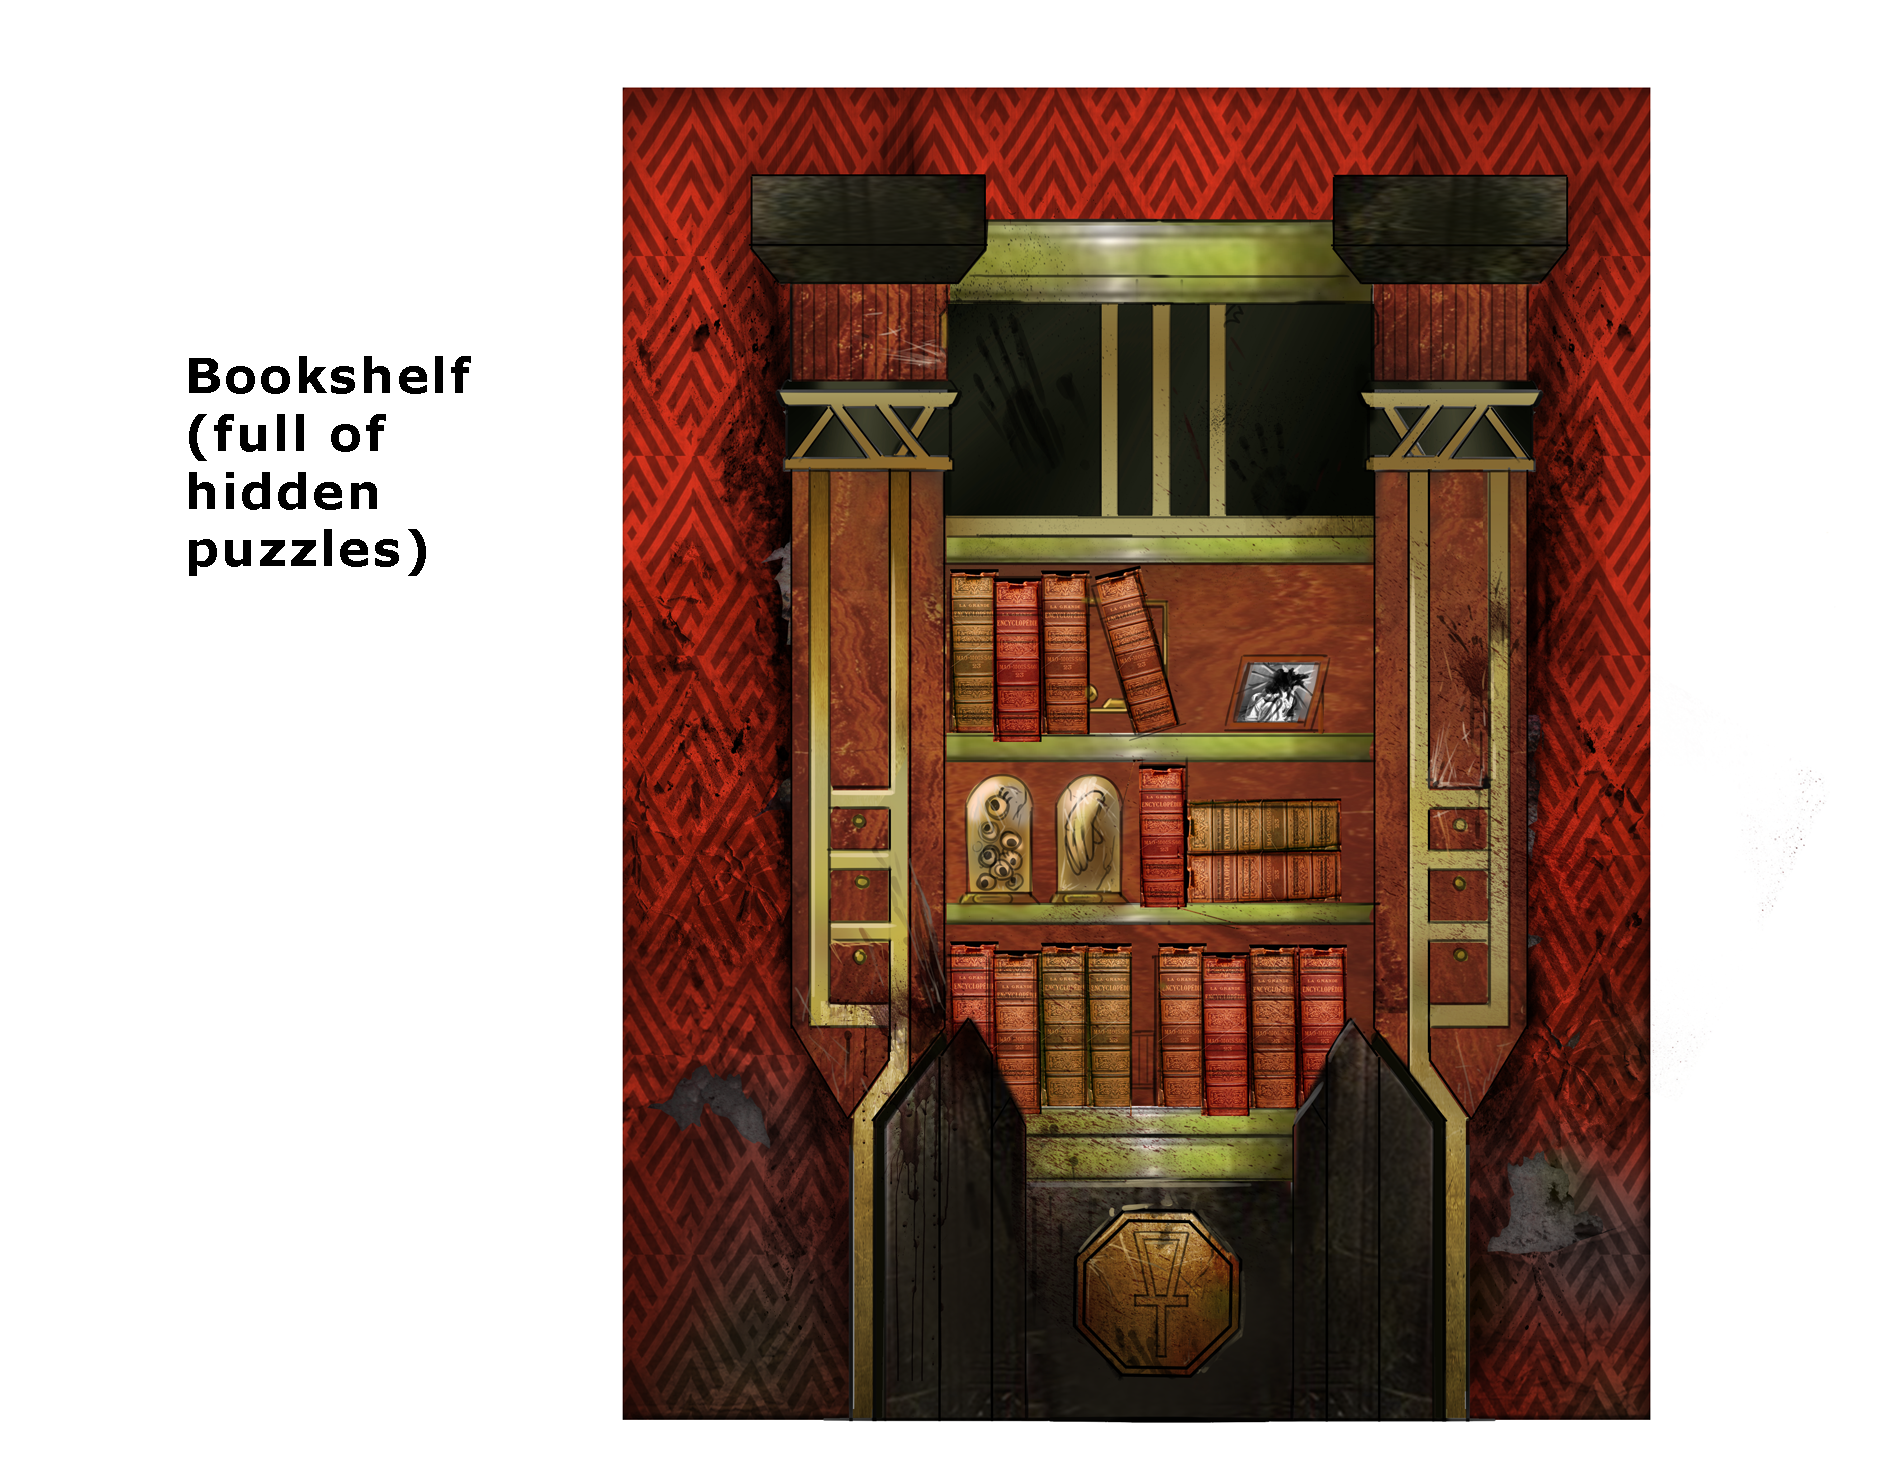 Env_Bookshelf_Concept_Textured_unreleased title.png